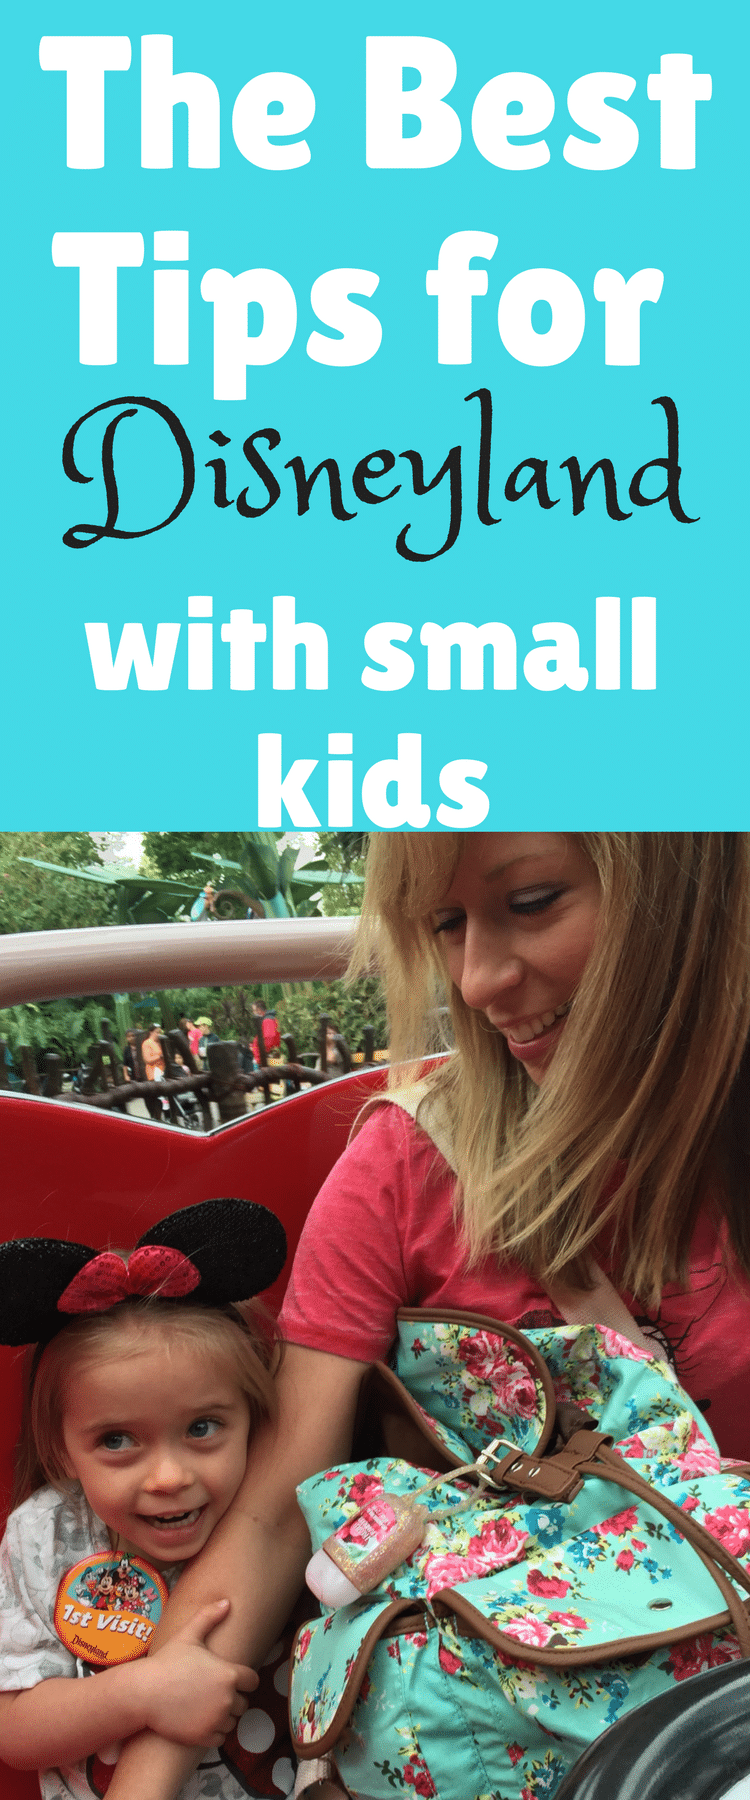 Disneyland with small kids / disneyland tips / disney tips / disney tips with kids